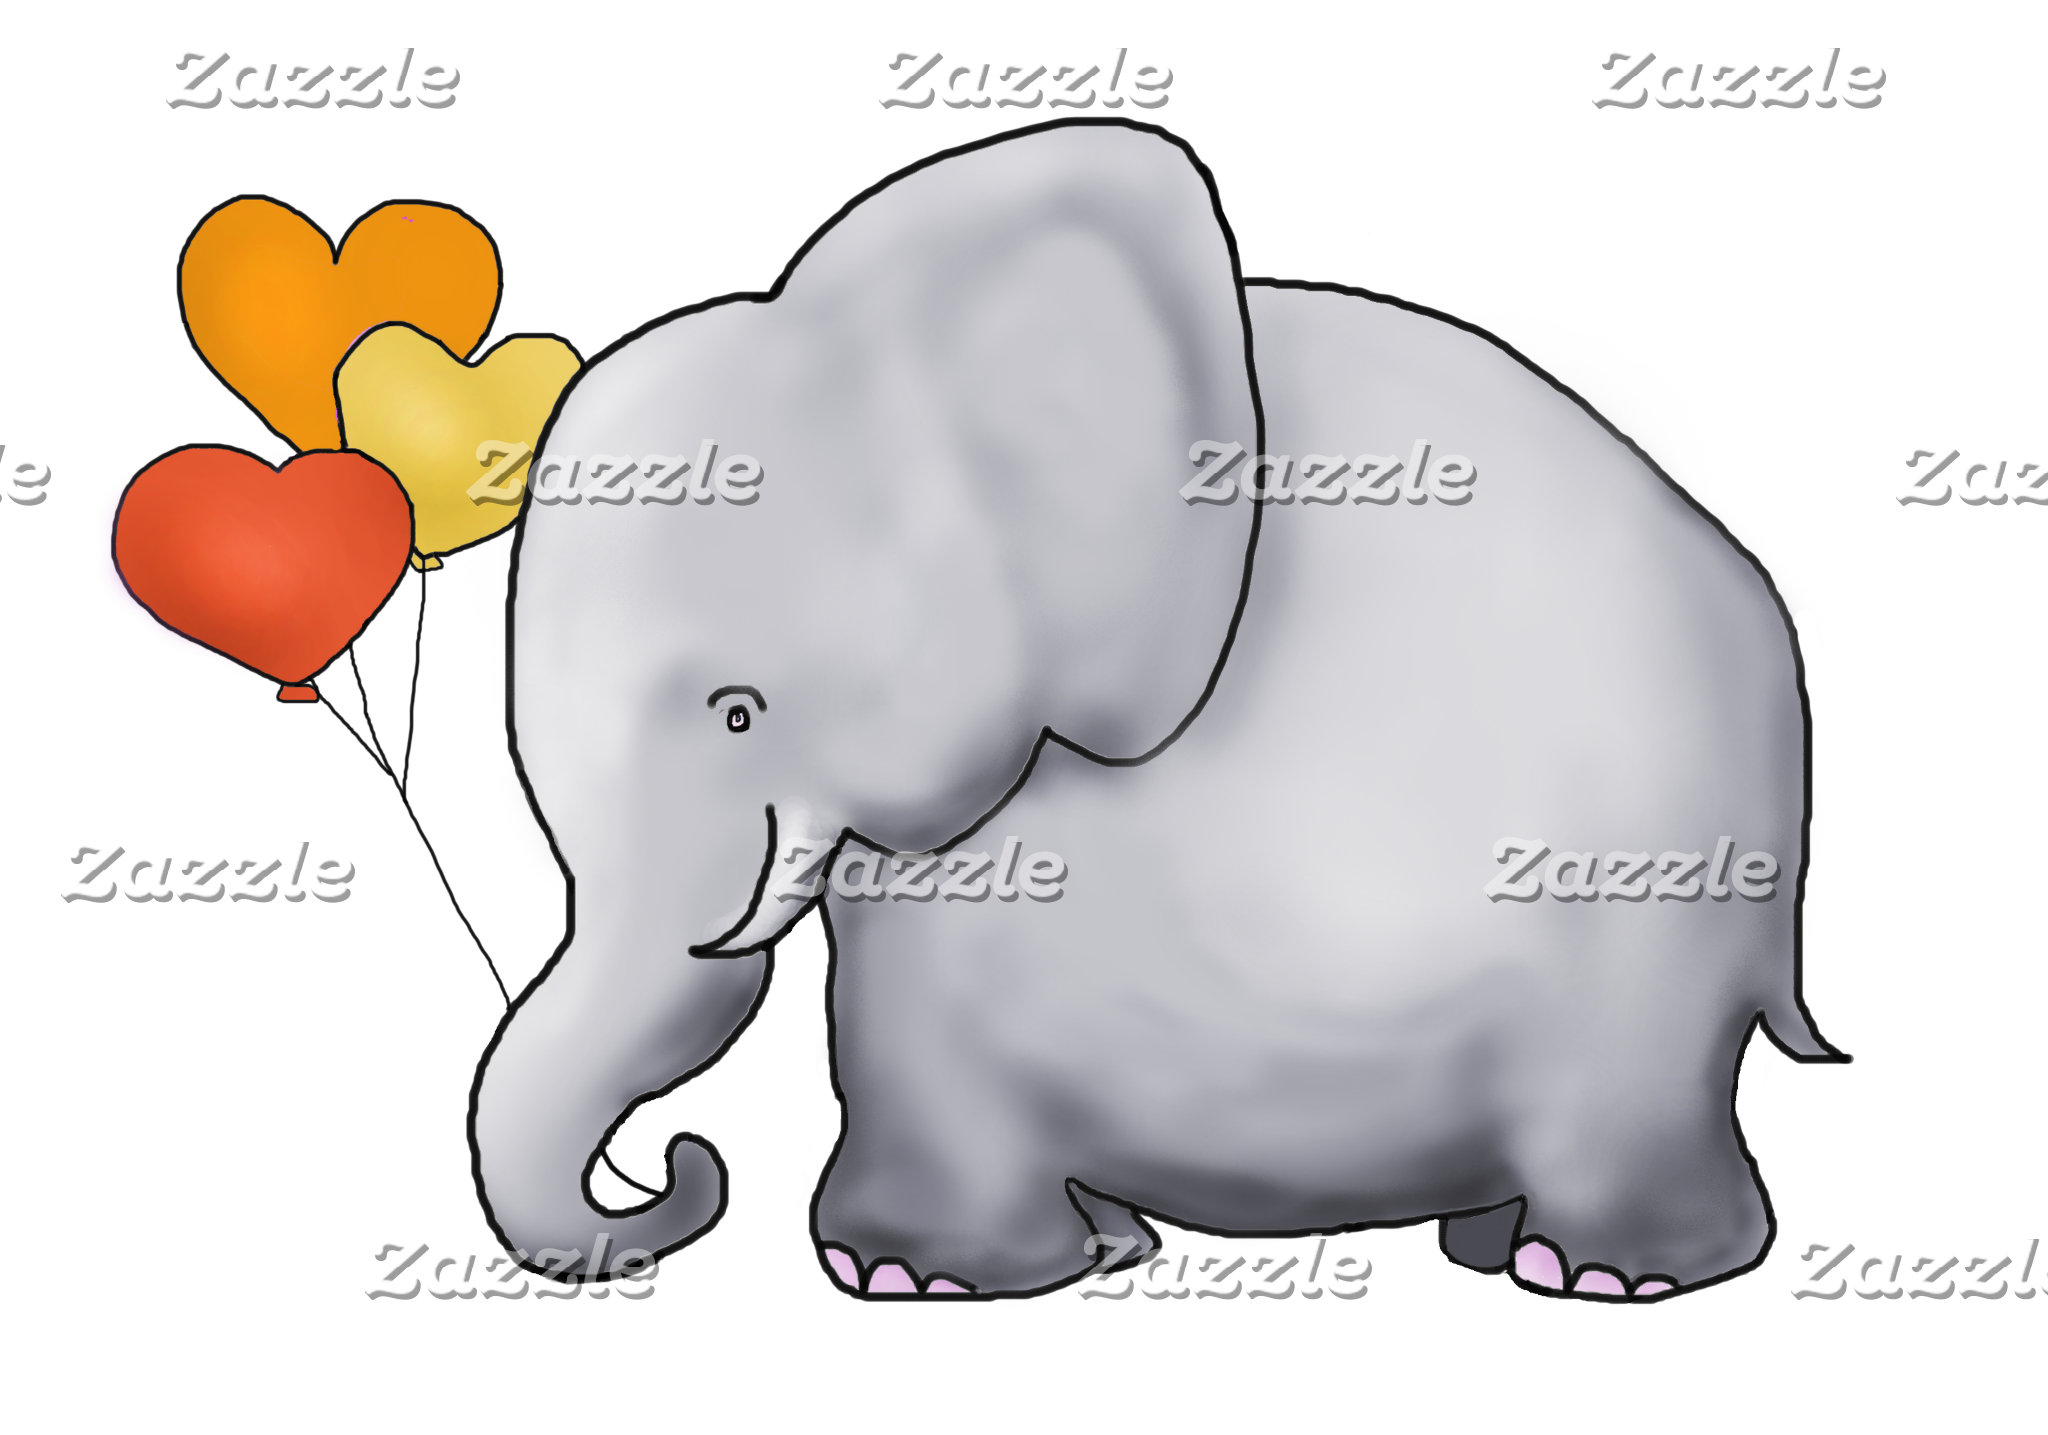 Cartoon Elephant with Heart Balloons